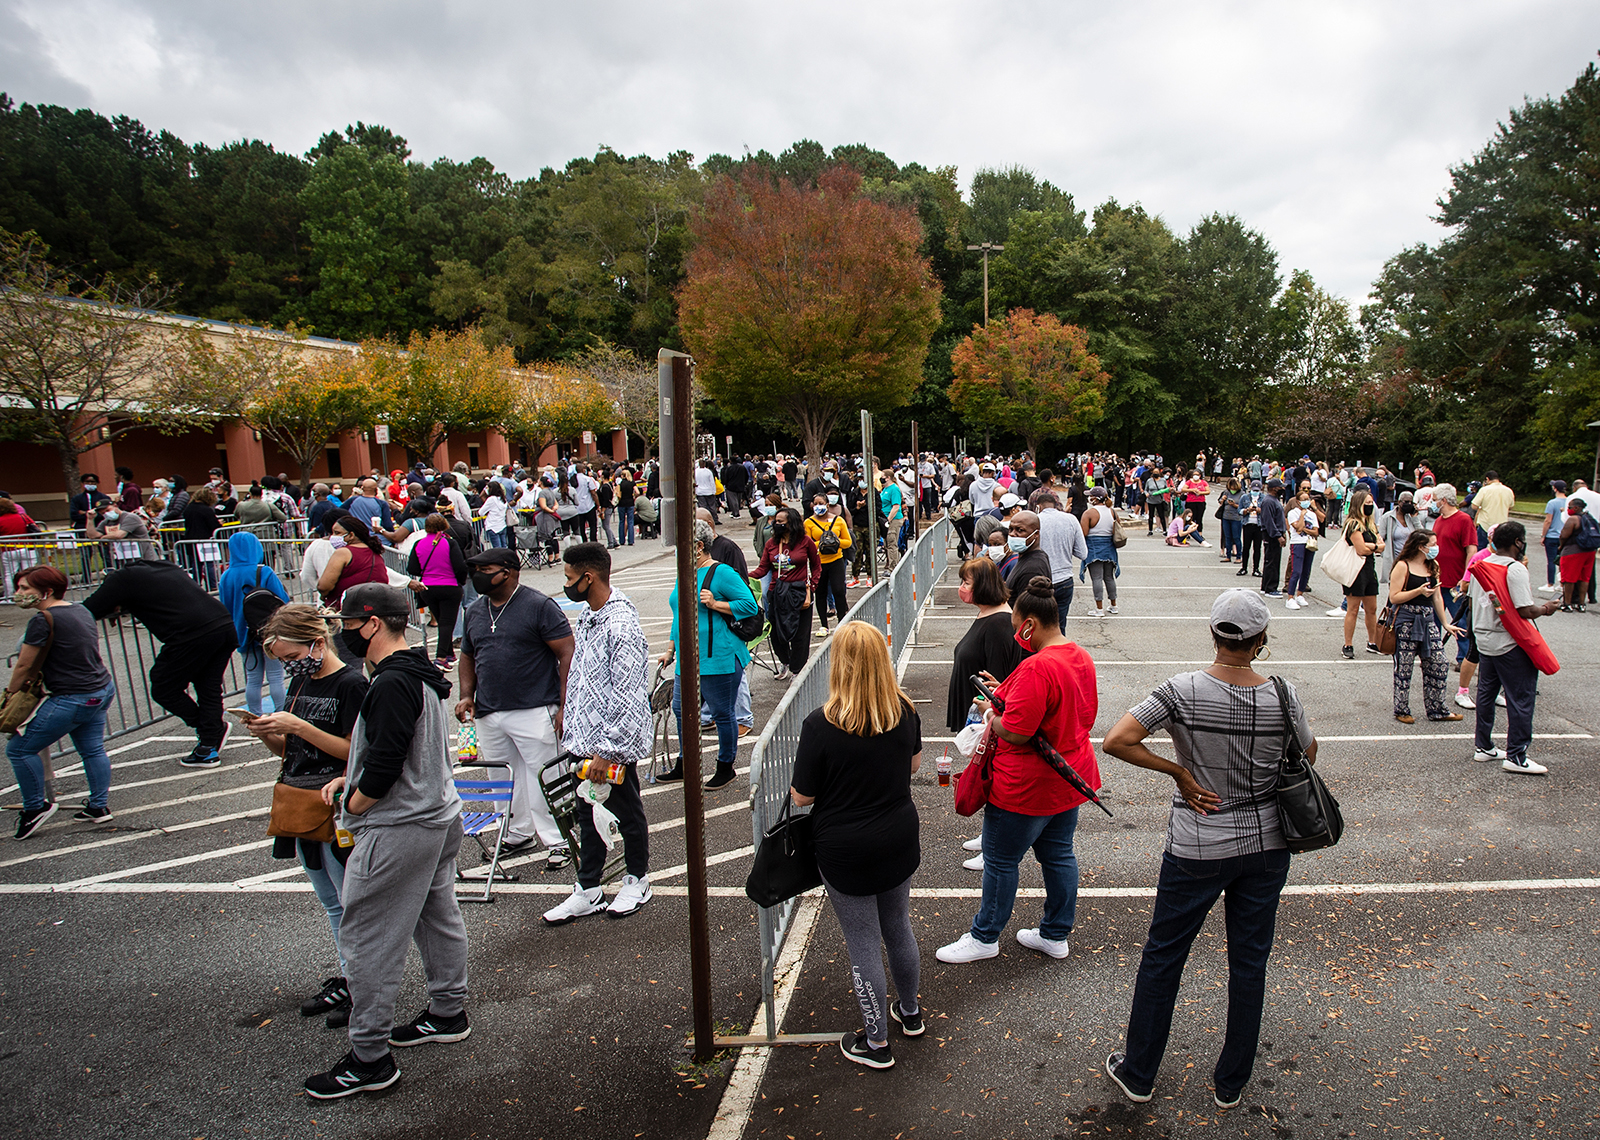 Hundreds of people wait in line for early voting in Marietta, Georgia, on Oct. 12, 2020. (AP Photo/Ron Harris, File)